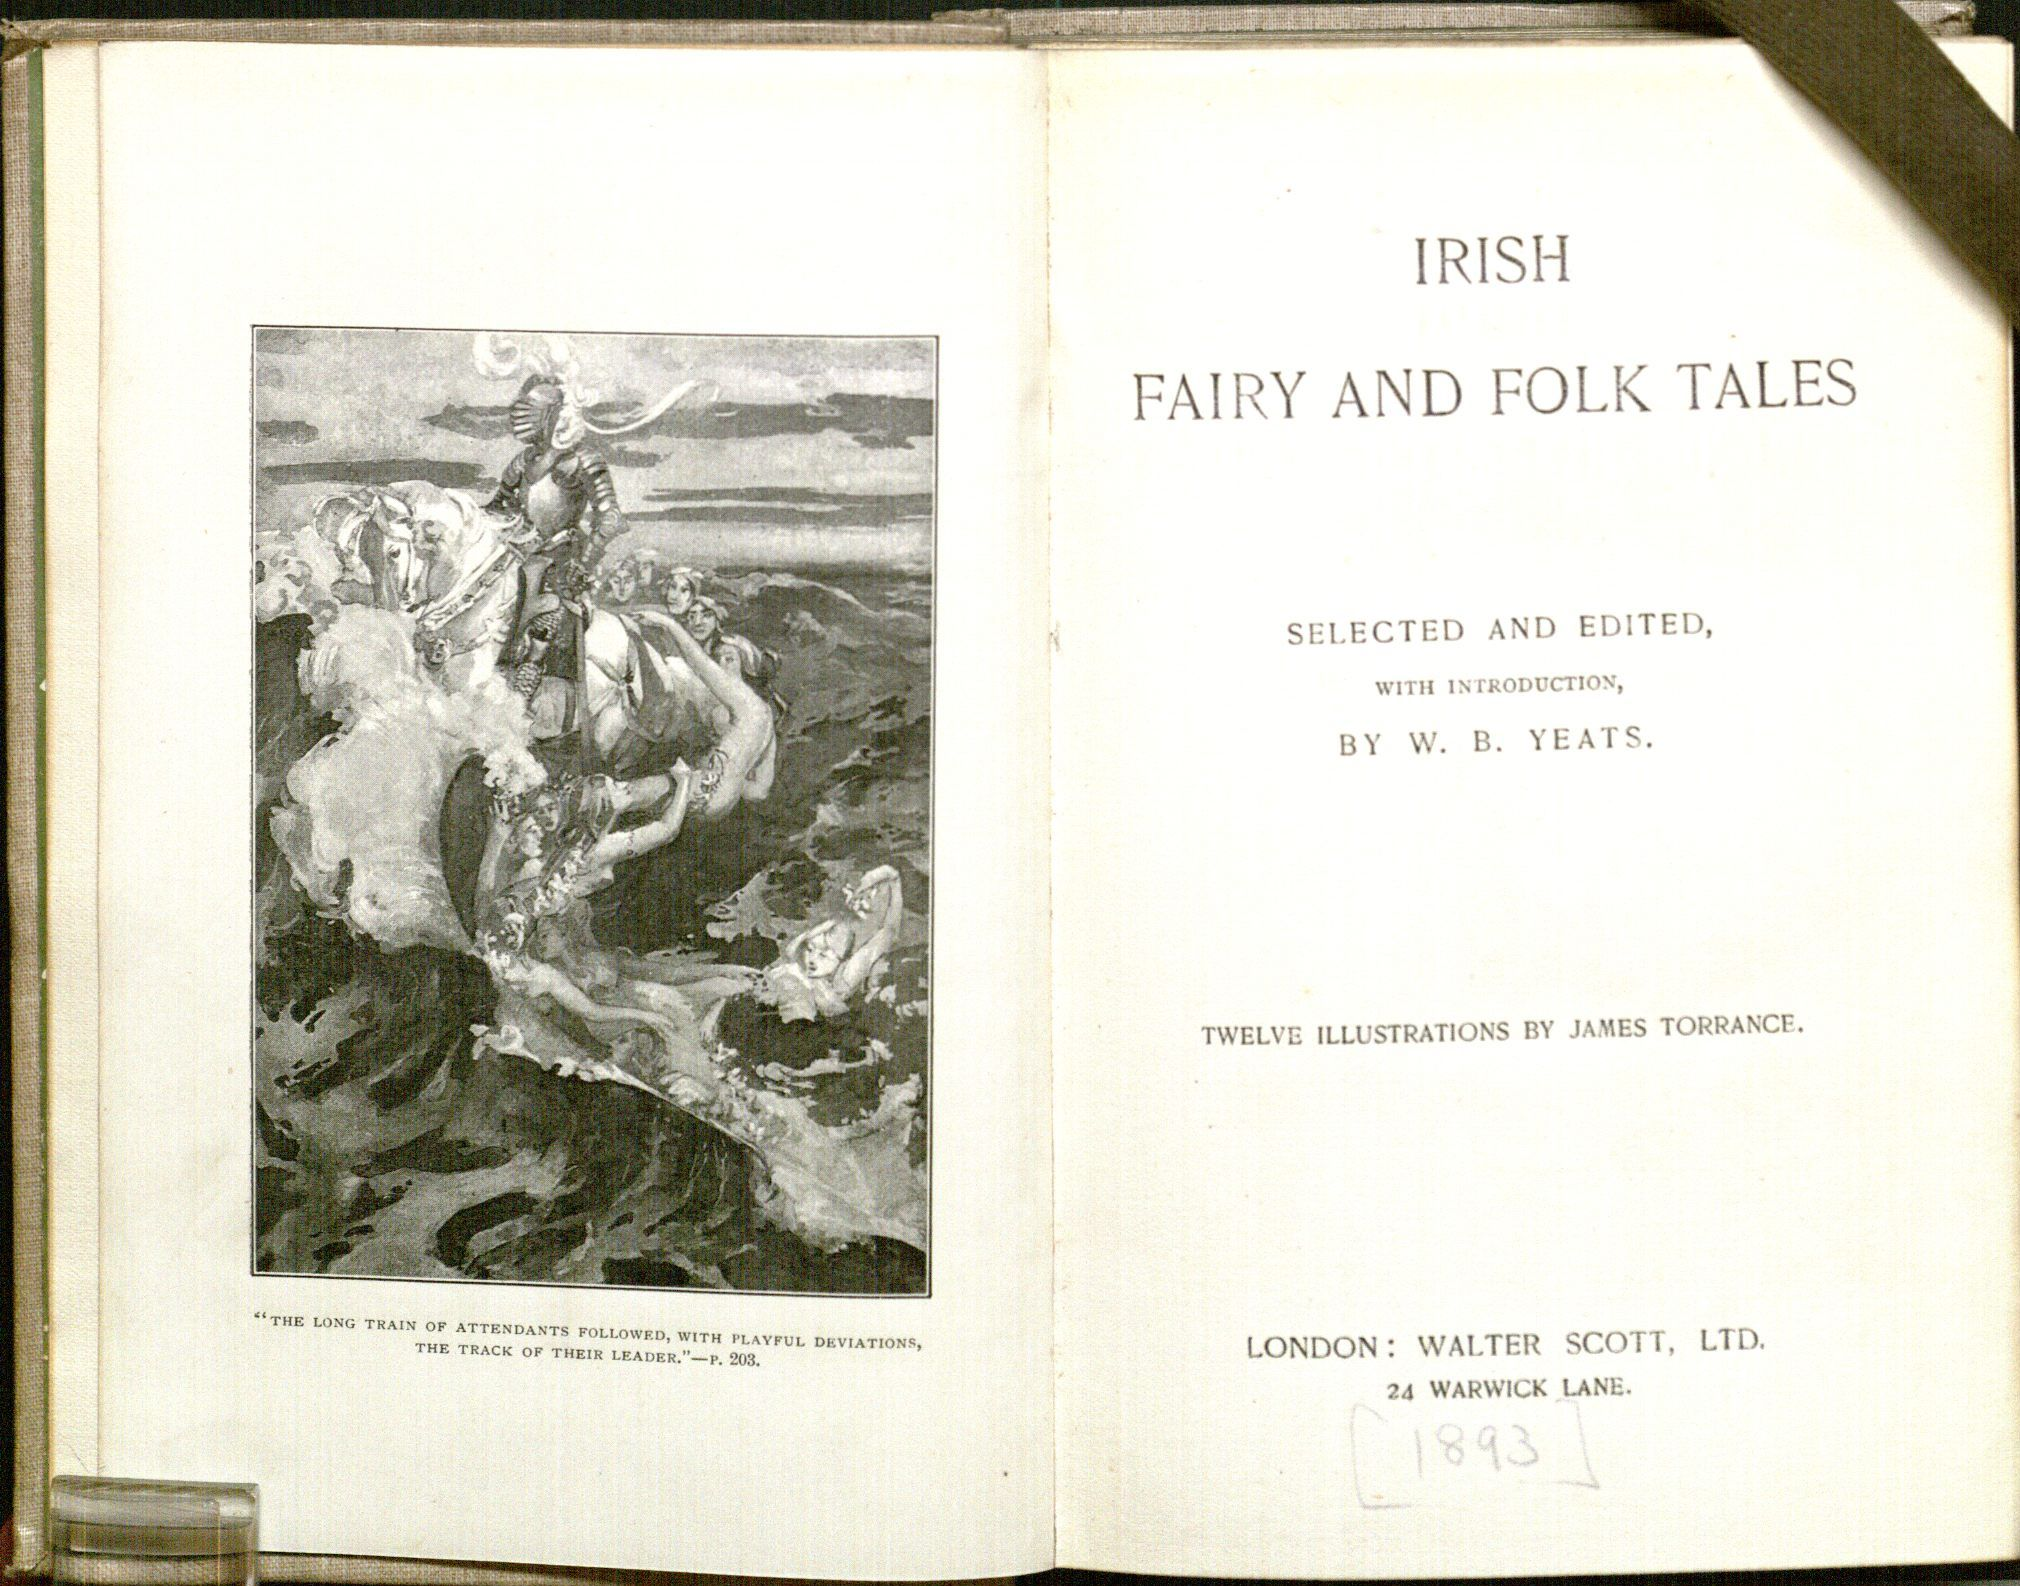 Frontispiece and title page of W. B. Yeats' Irish Fairy and Folk Tales (1893), an editon of his 1888 Fairy and Folk Tales of the Irish Peasantry, with 12 illustsrations by James Torrance.